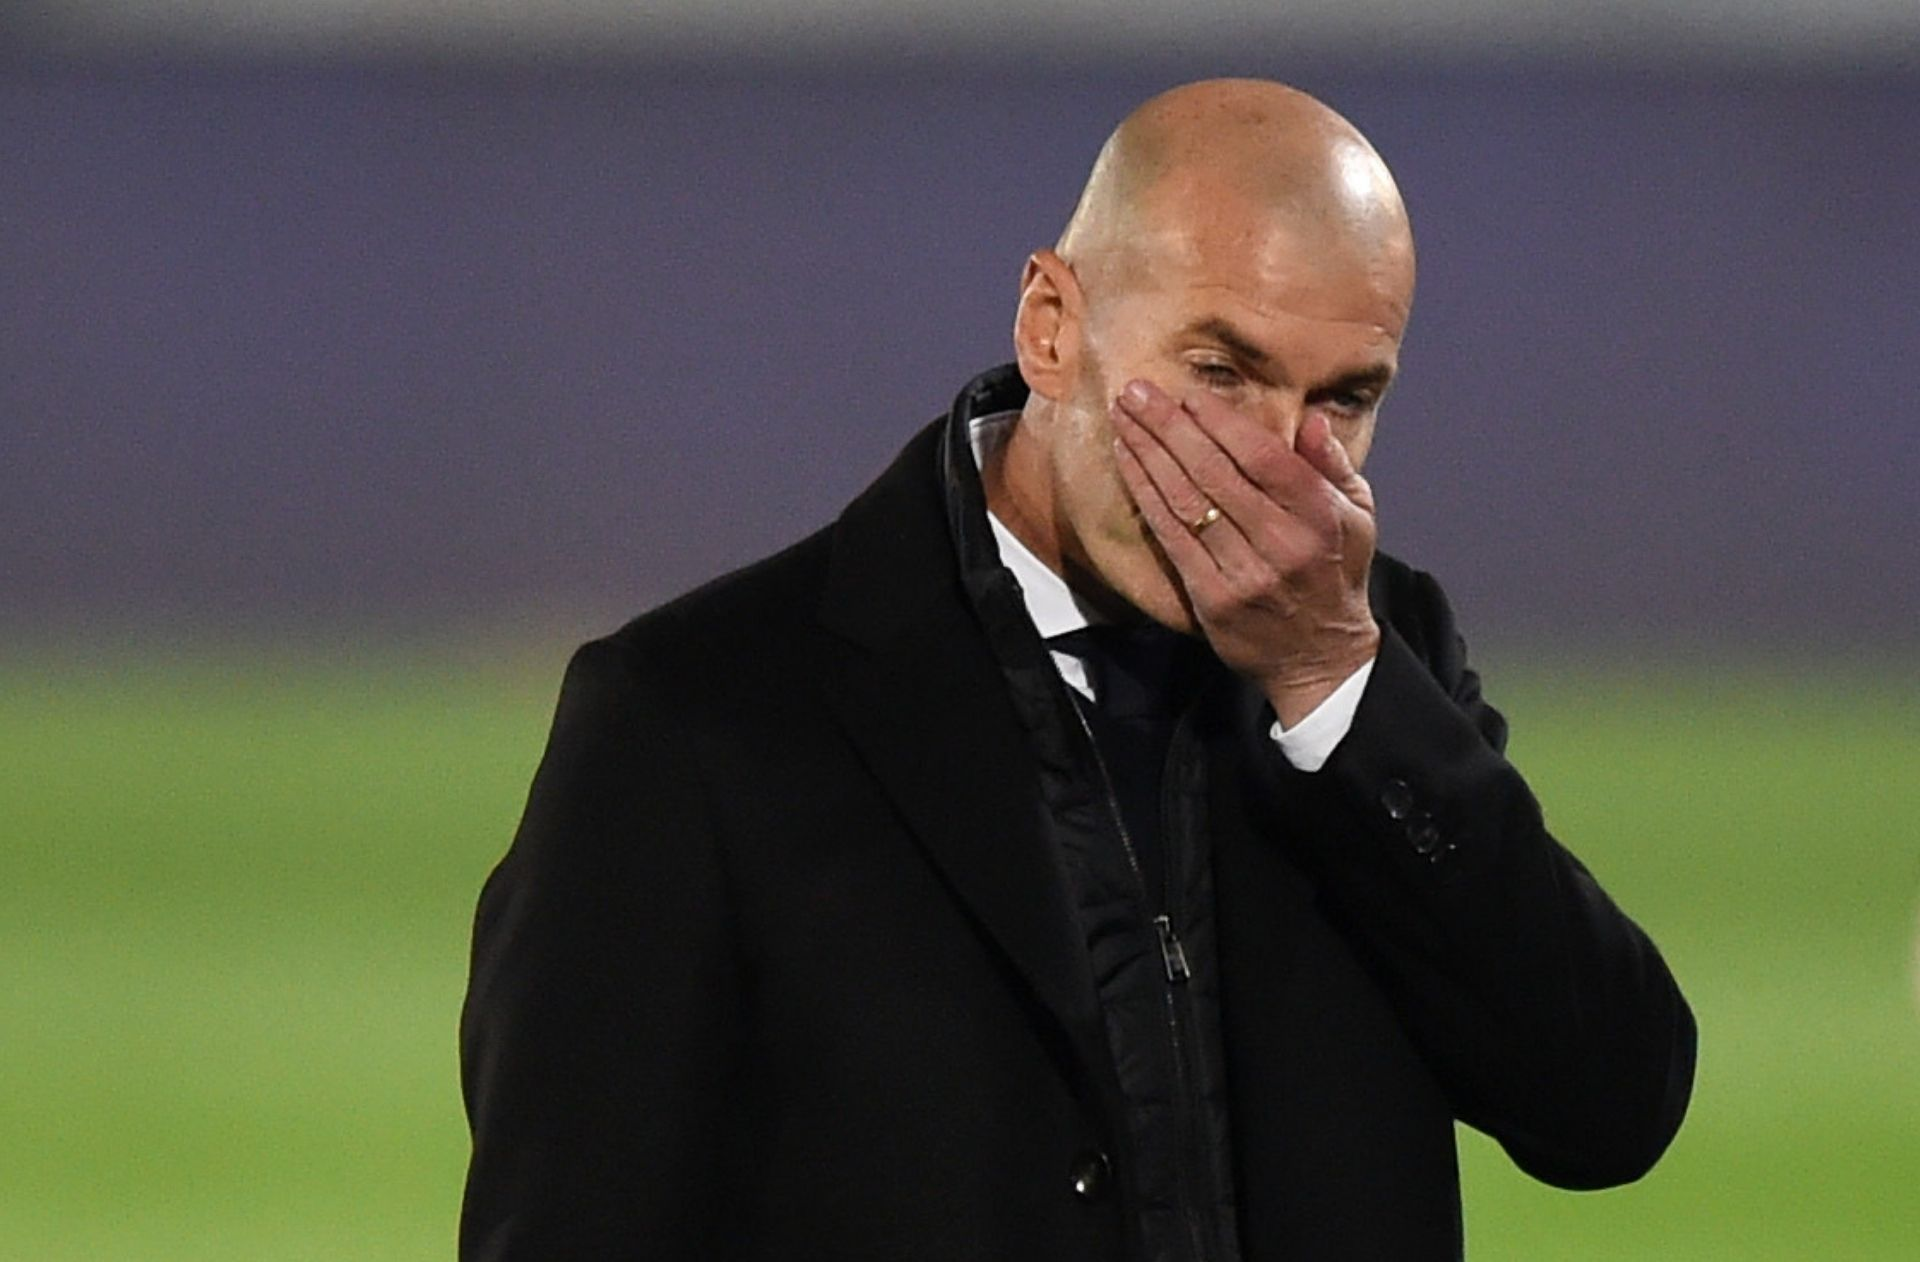 Zidane accepts blame for Real Madrid's shock Copa del Rey exit